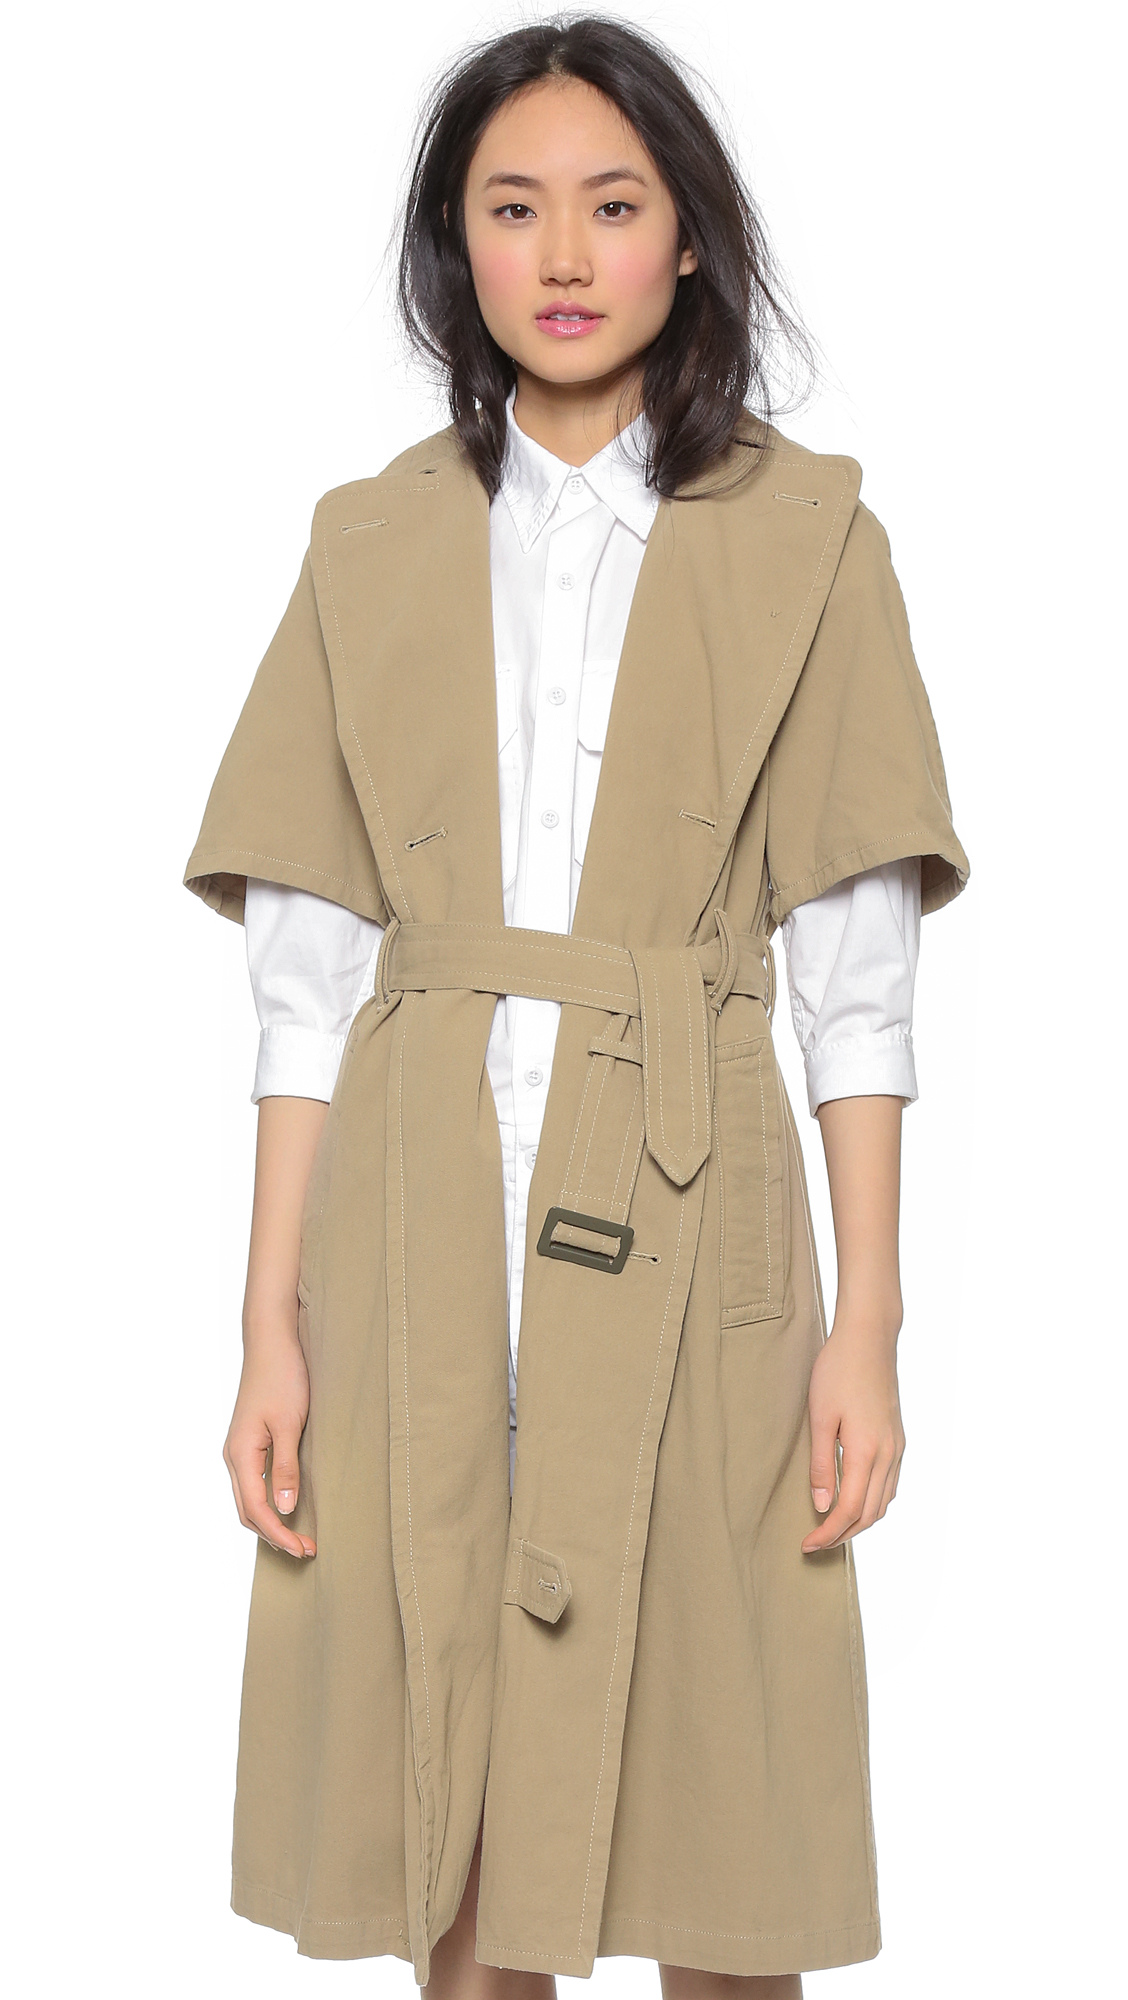 Nlst Short Sleeve Trench Coat - Khaki in Natural | Lyst